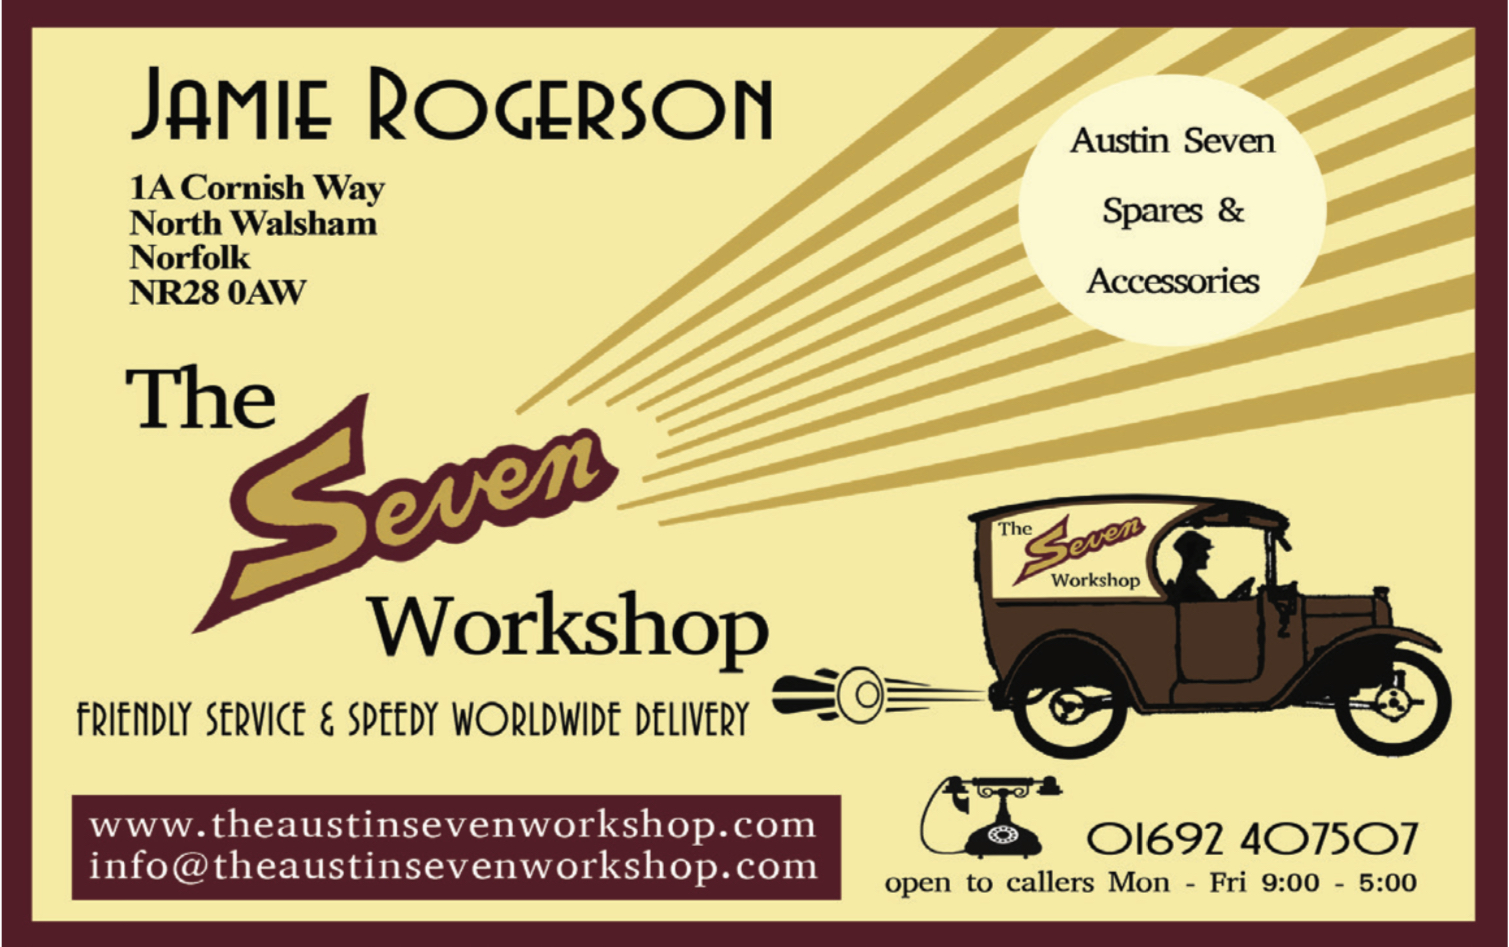 The Seven Workshop Jamie Rogerson  - Austin 7 parts and service and repairs